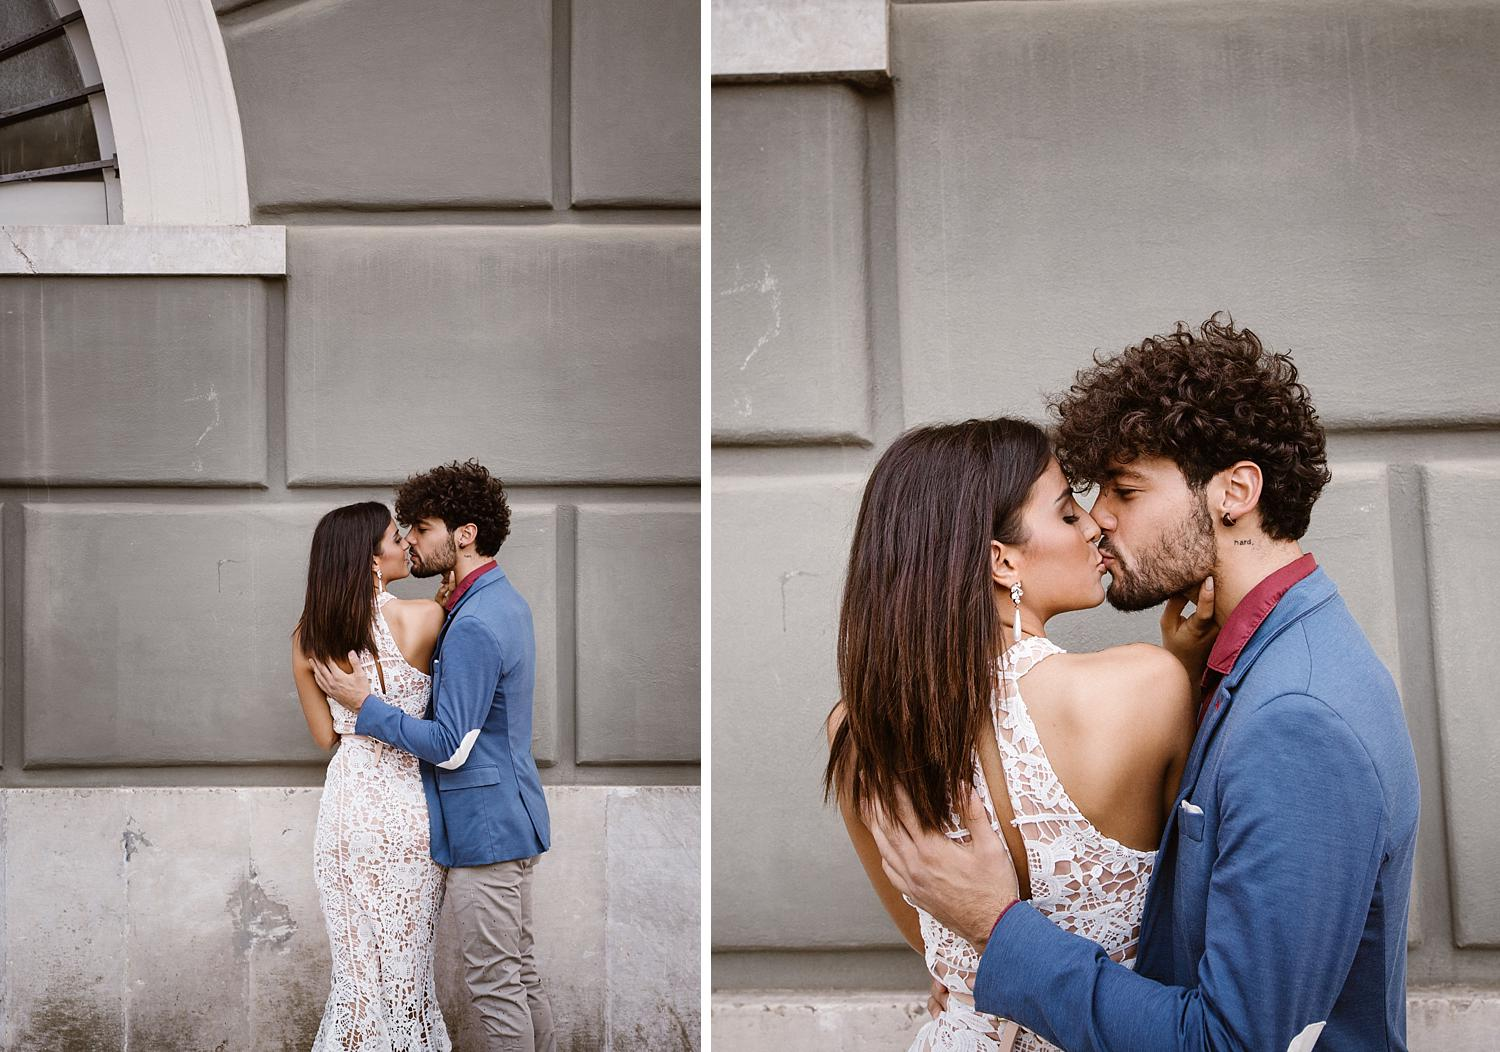 mf weddingphotographer rome 02 - Marika & Franklin - Intimate Session in Gaeta